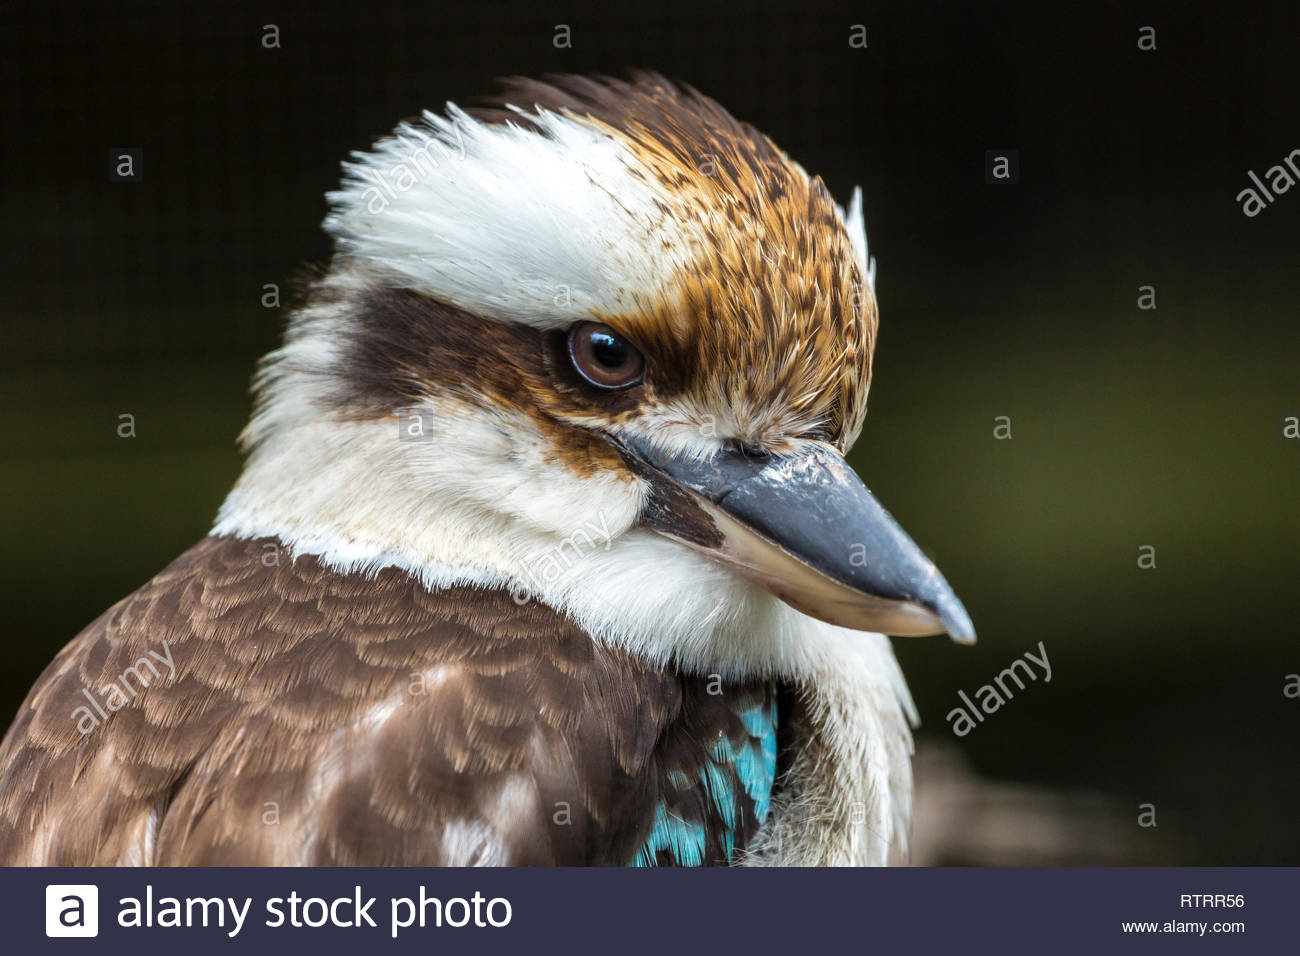 The Laughing Kookaburra, unlike the European kingfisher, is very bold in human society and can become a nuisance. - Stock Image